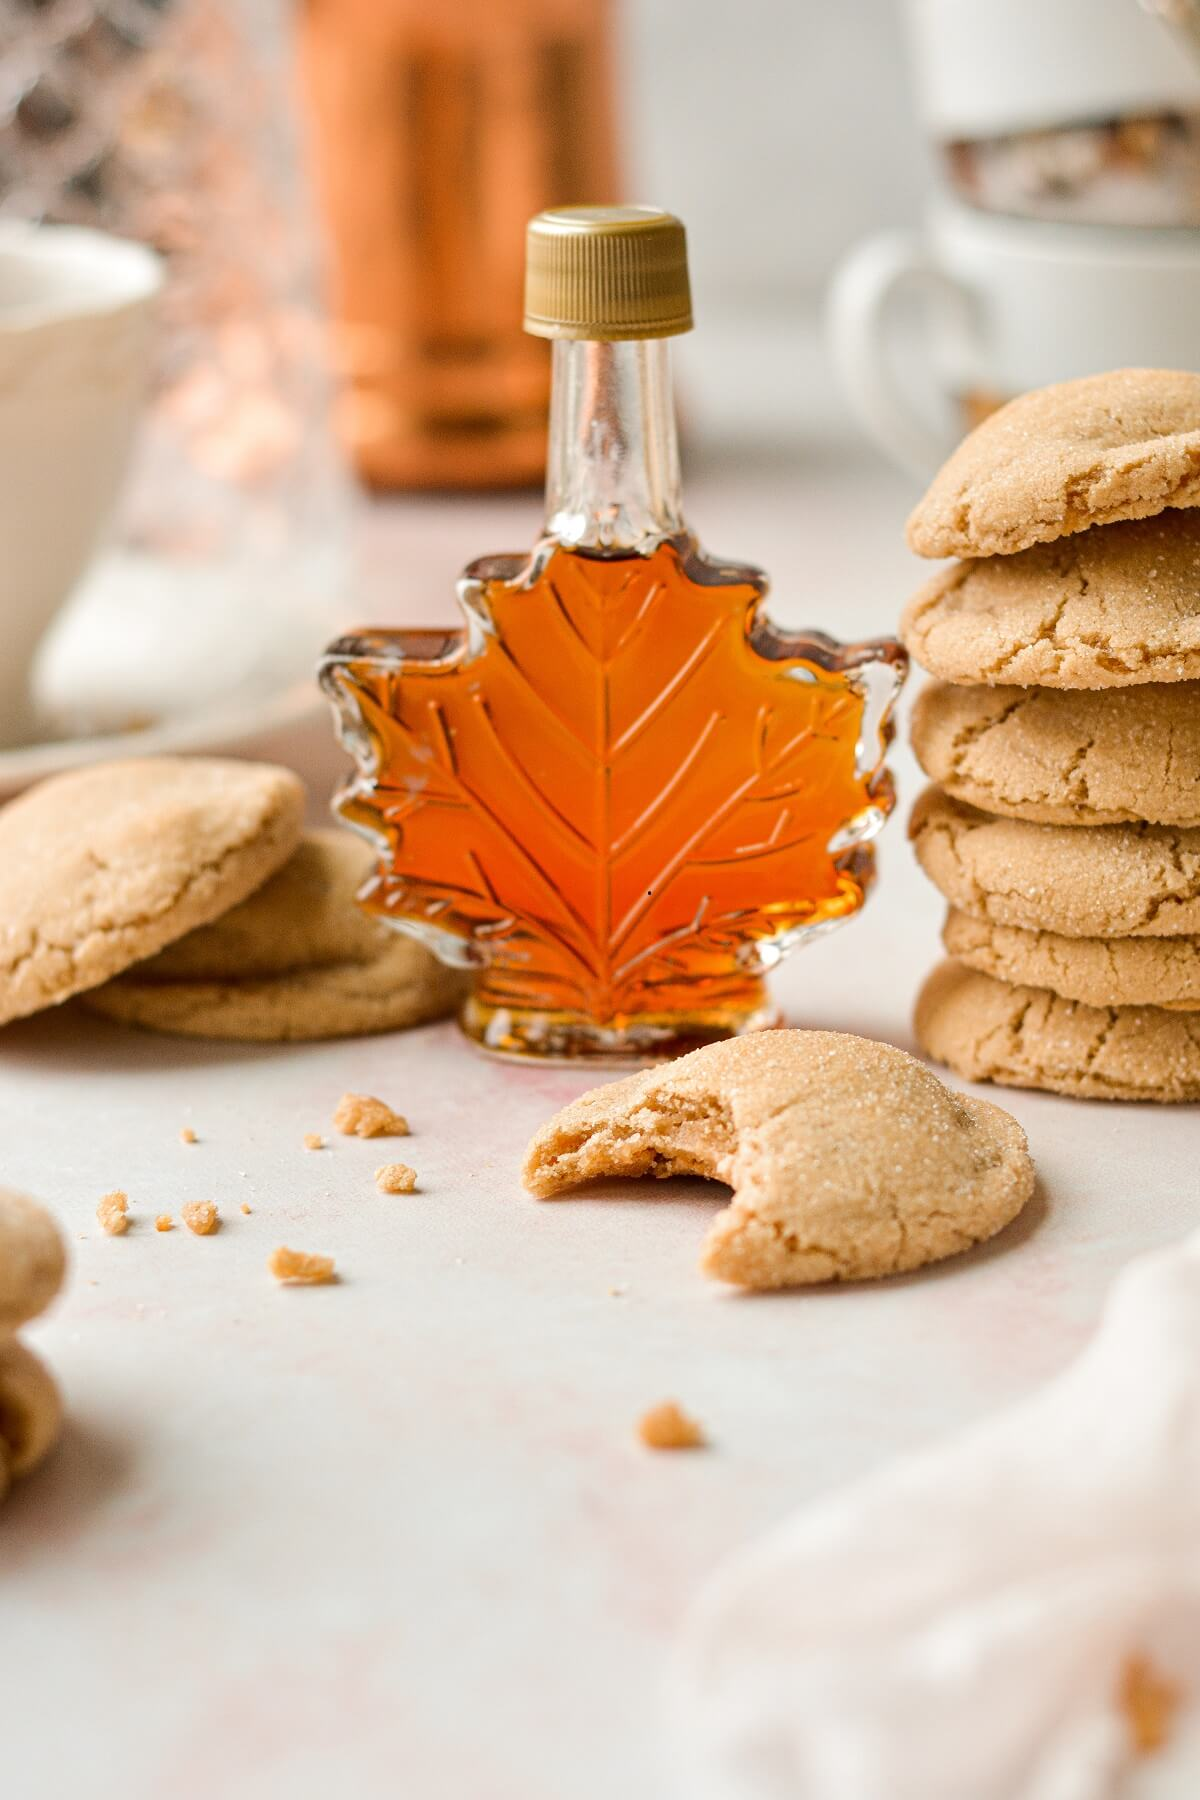 Soft maple cookies next to a maple leaf shaped glass syrup bottle.